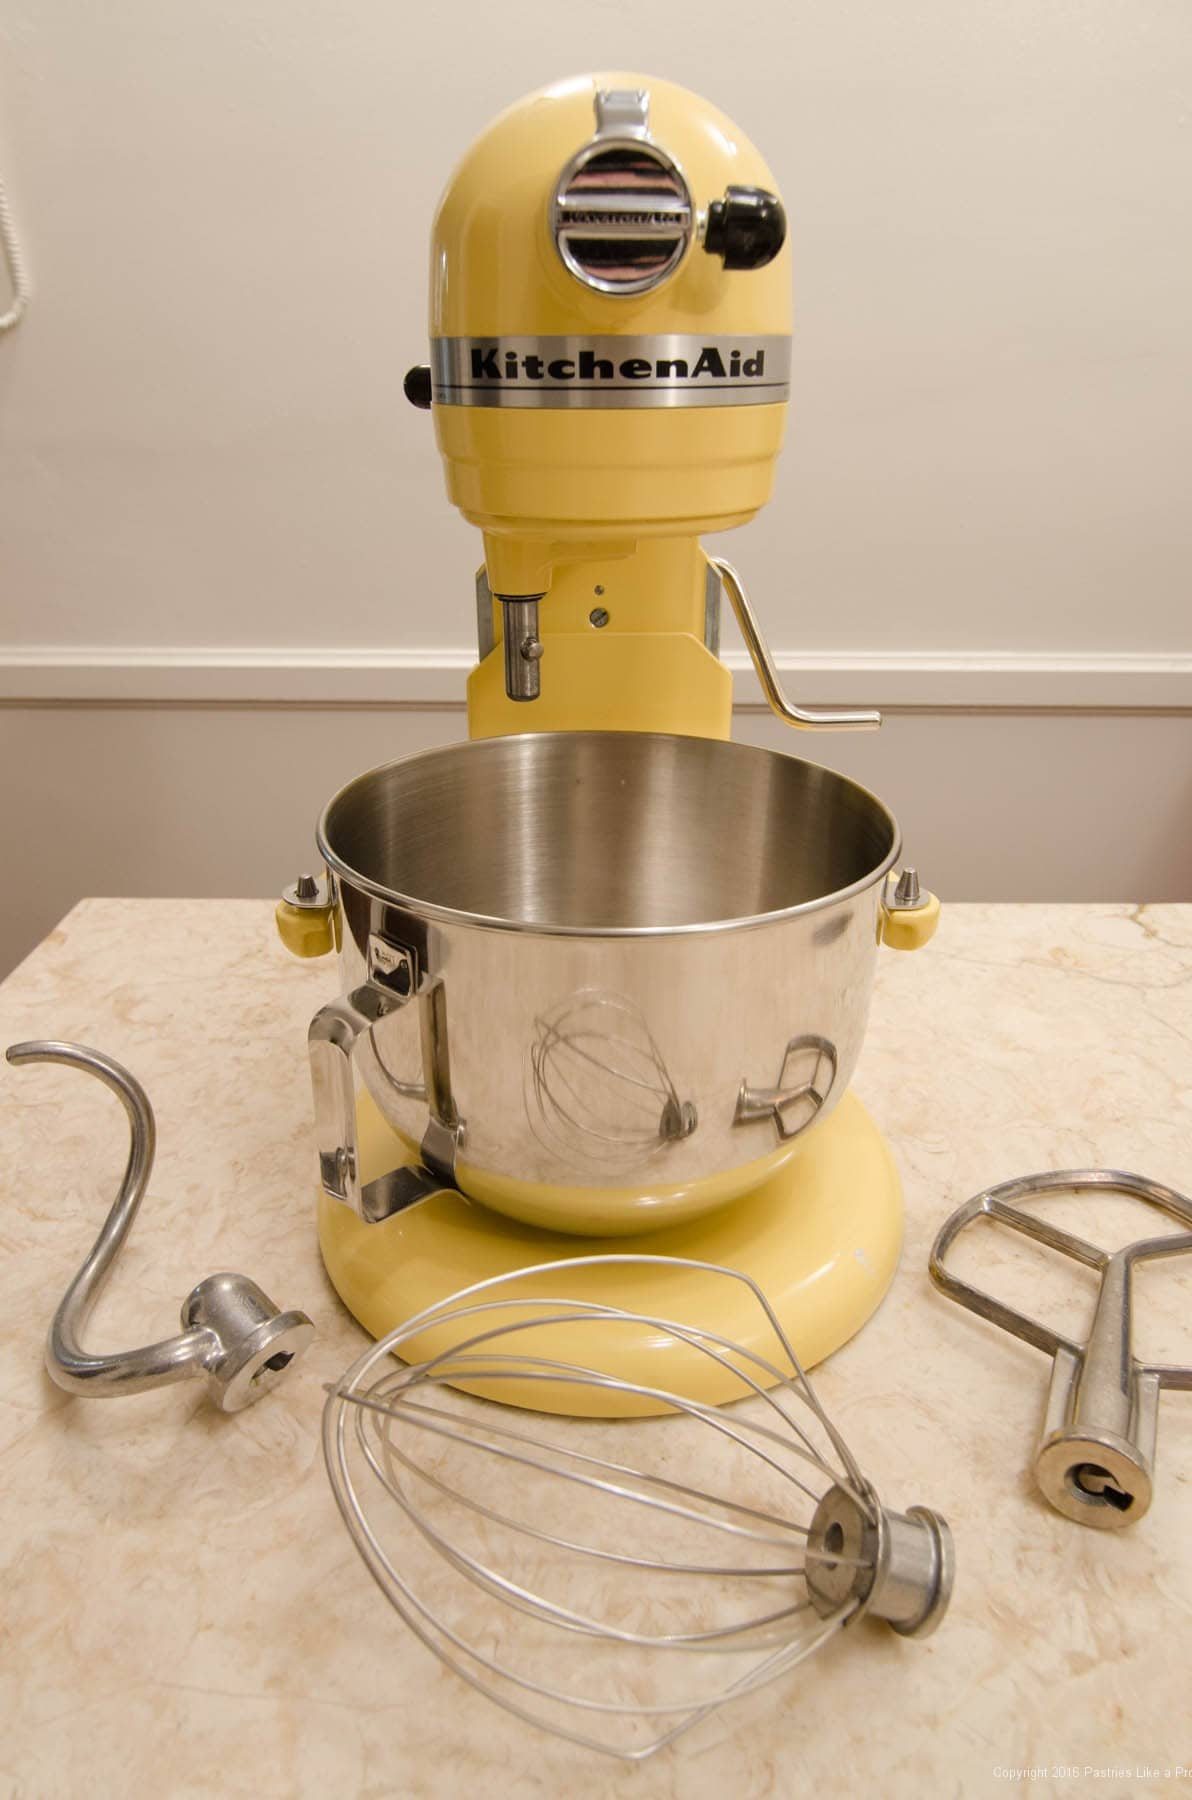 Breville Mixer vs KitchenAid Mixer  Pastries Like a Pro -> Kitchenaid Yellow